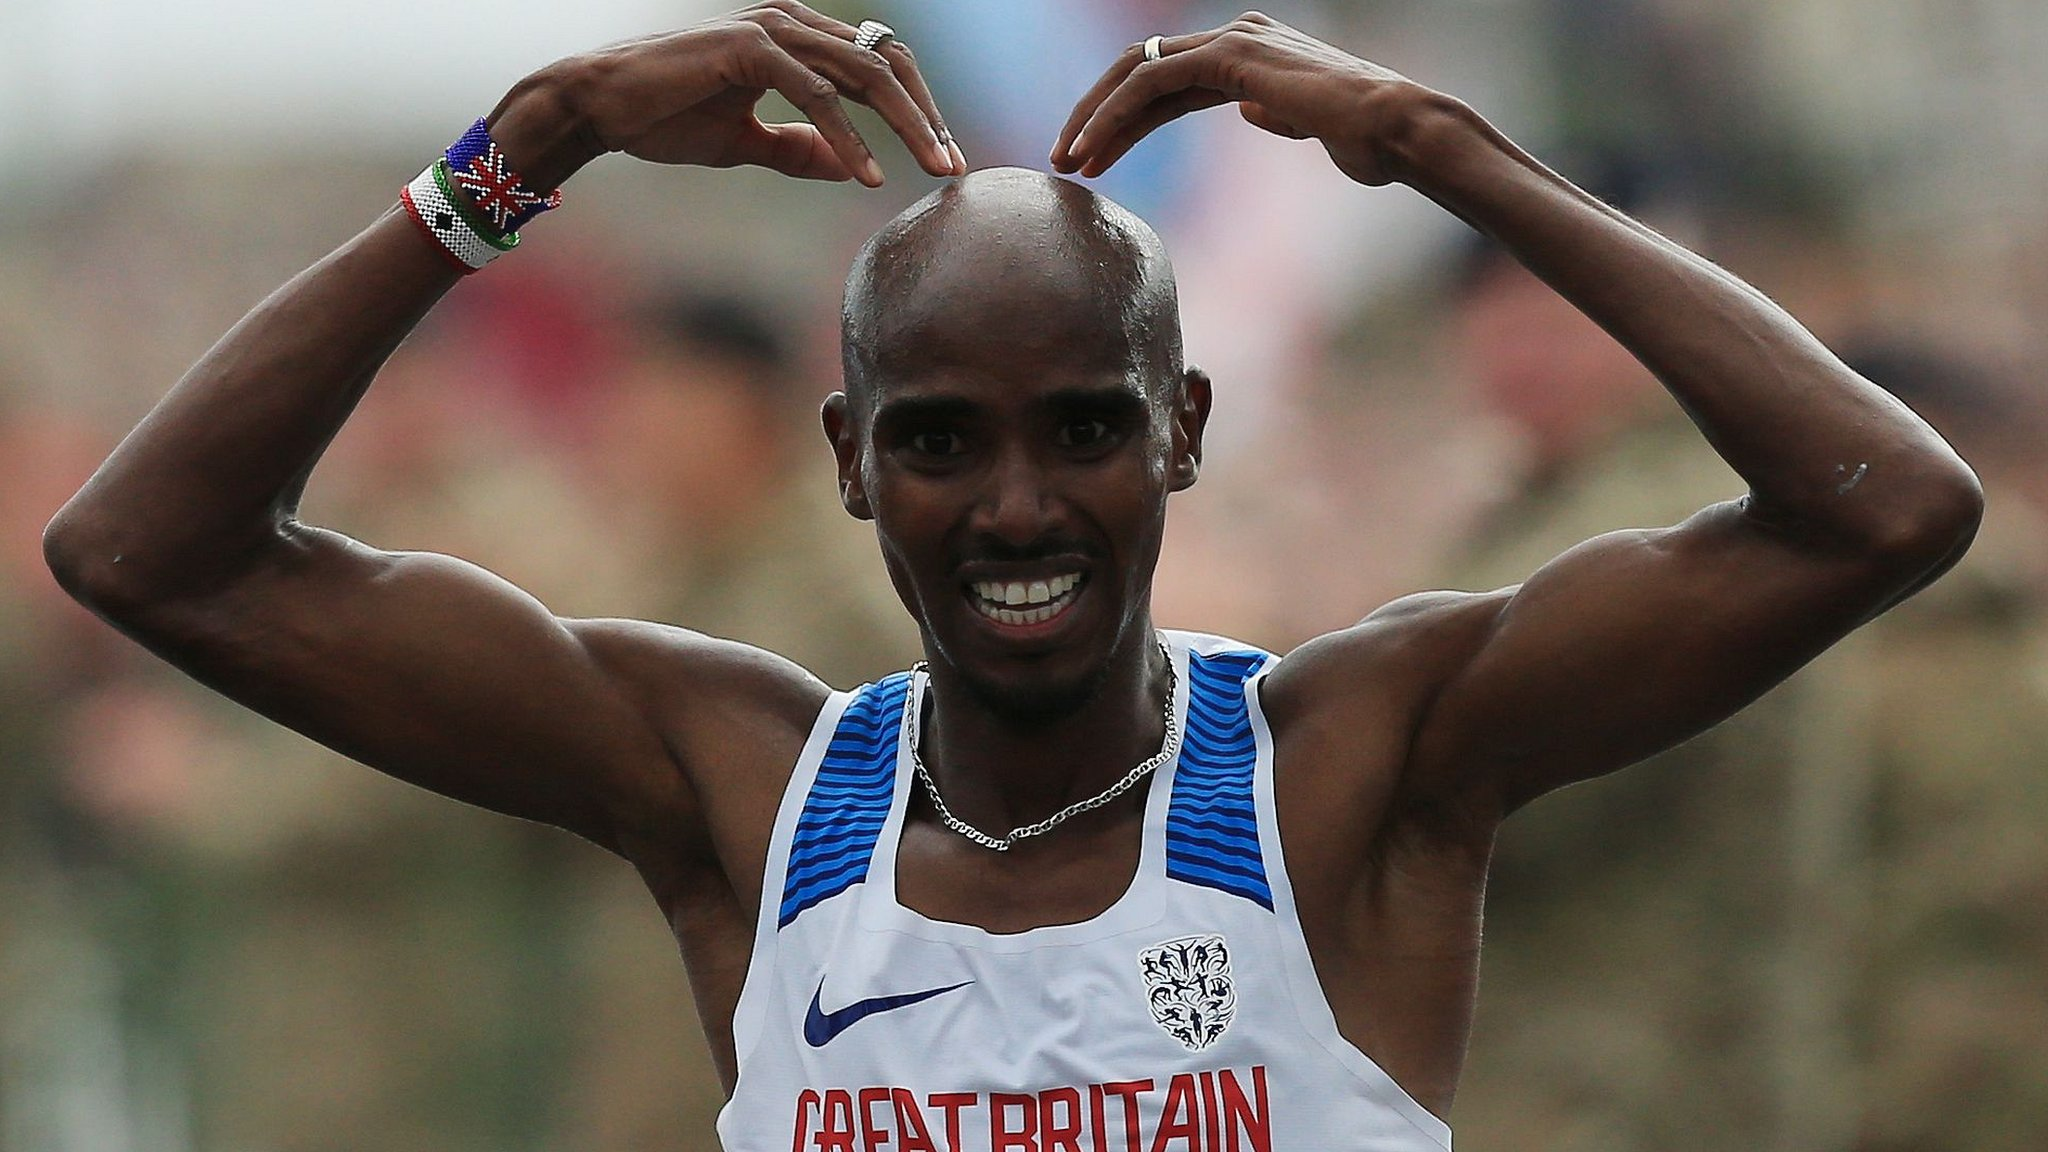 Great North Run: Mo Farah wins for record fourth straight year